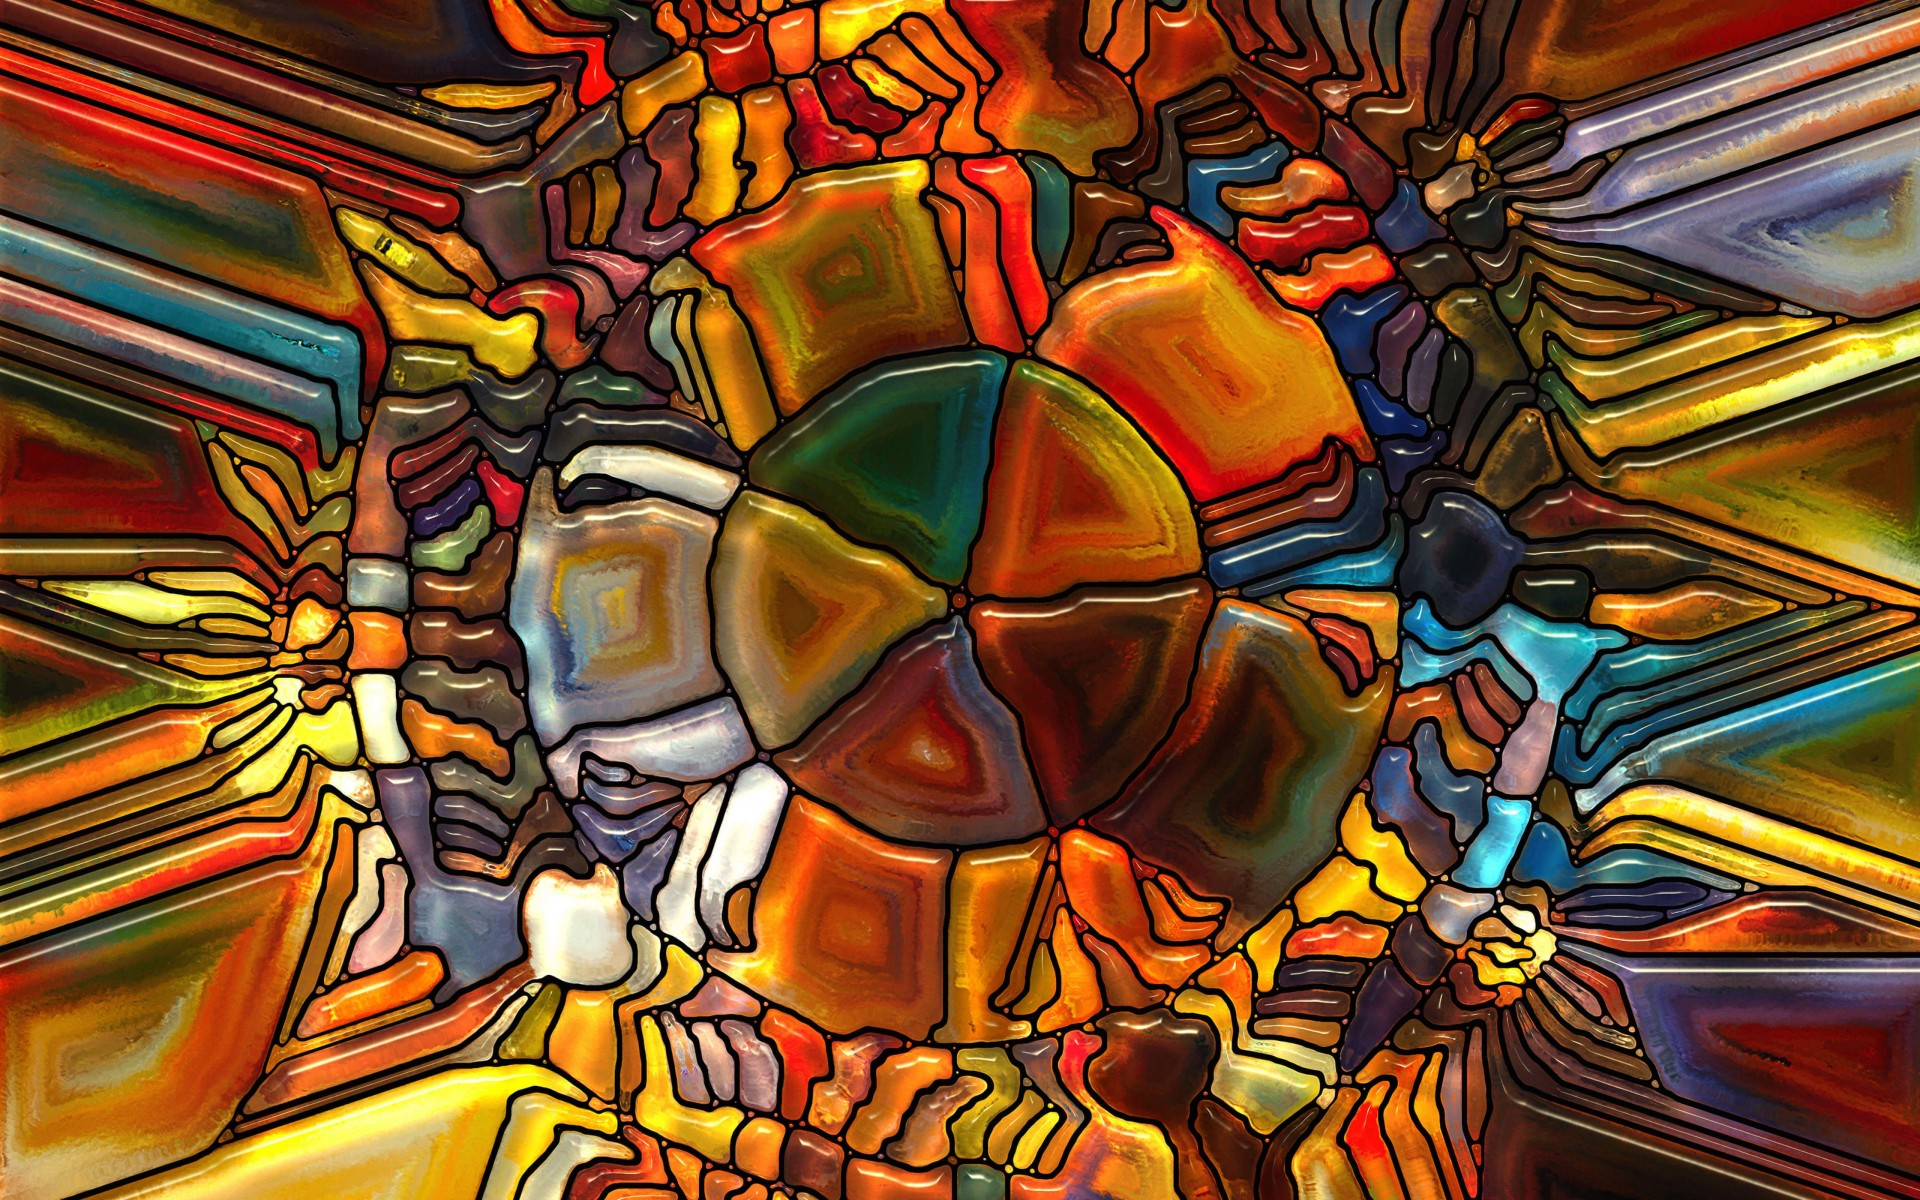 Psychedelic Stained Glass Wallpaper for Desktop 1920x1200